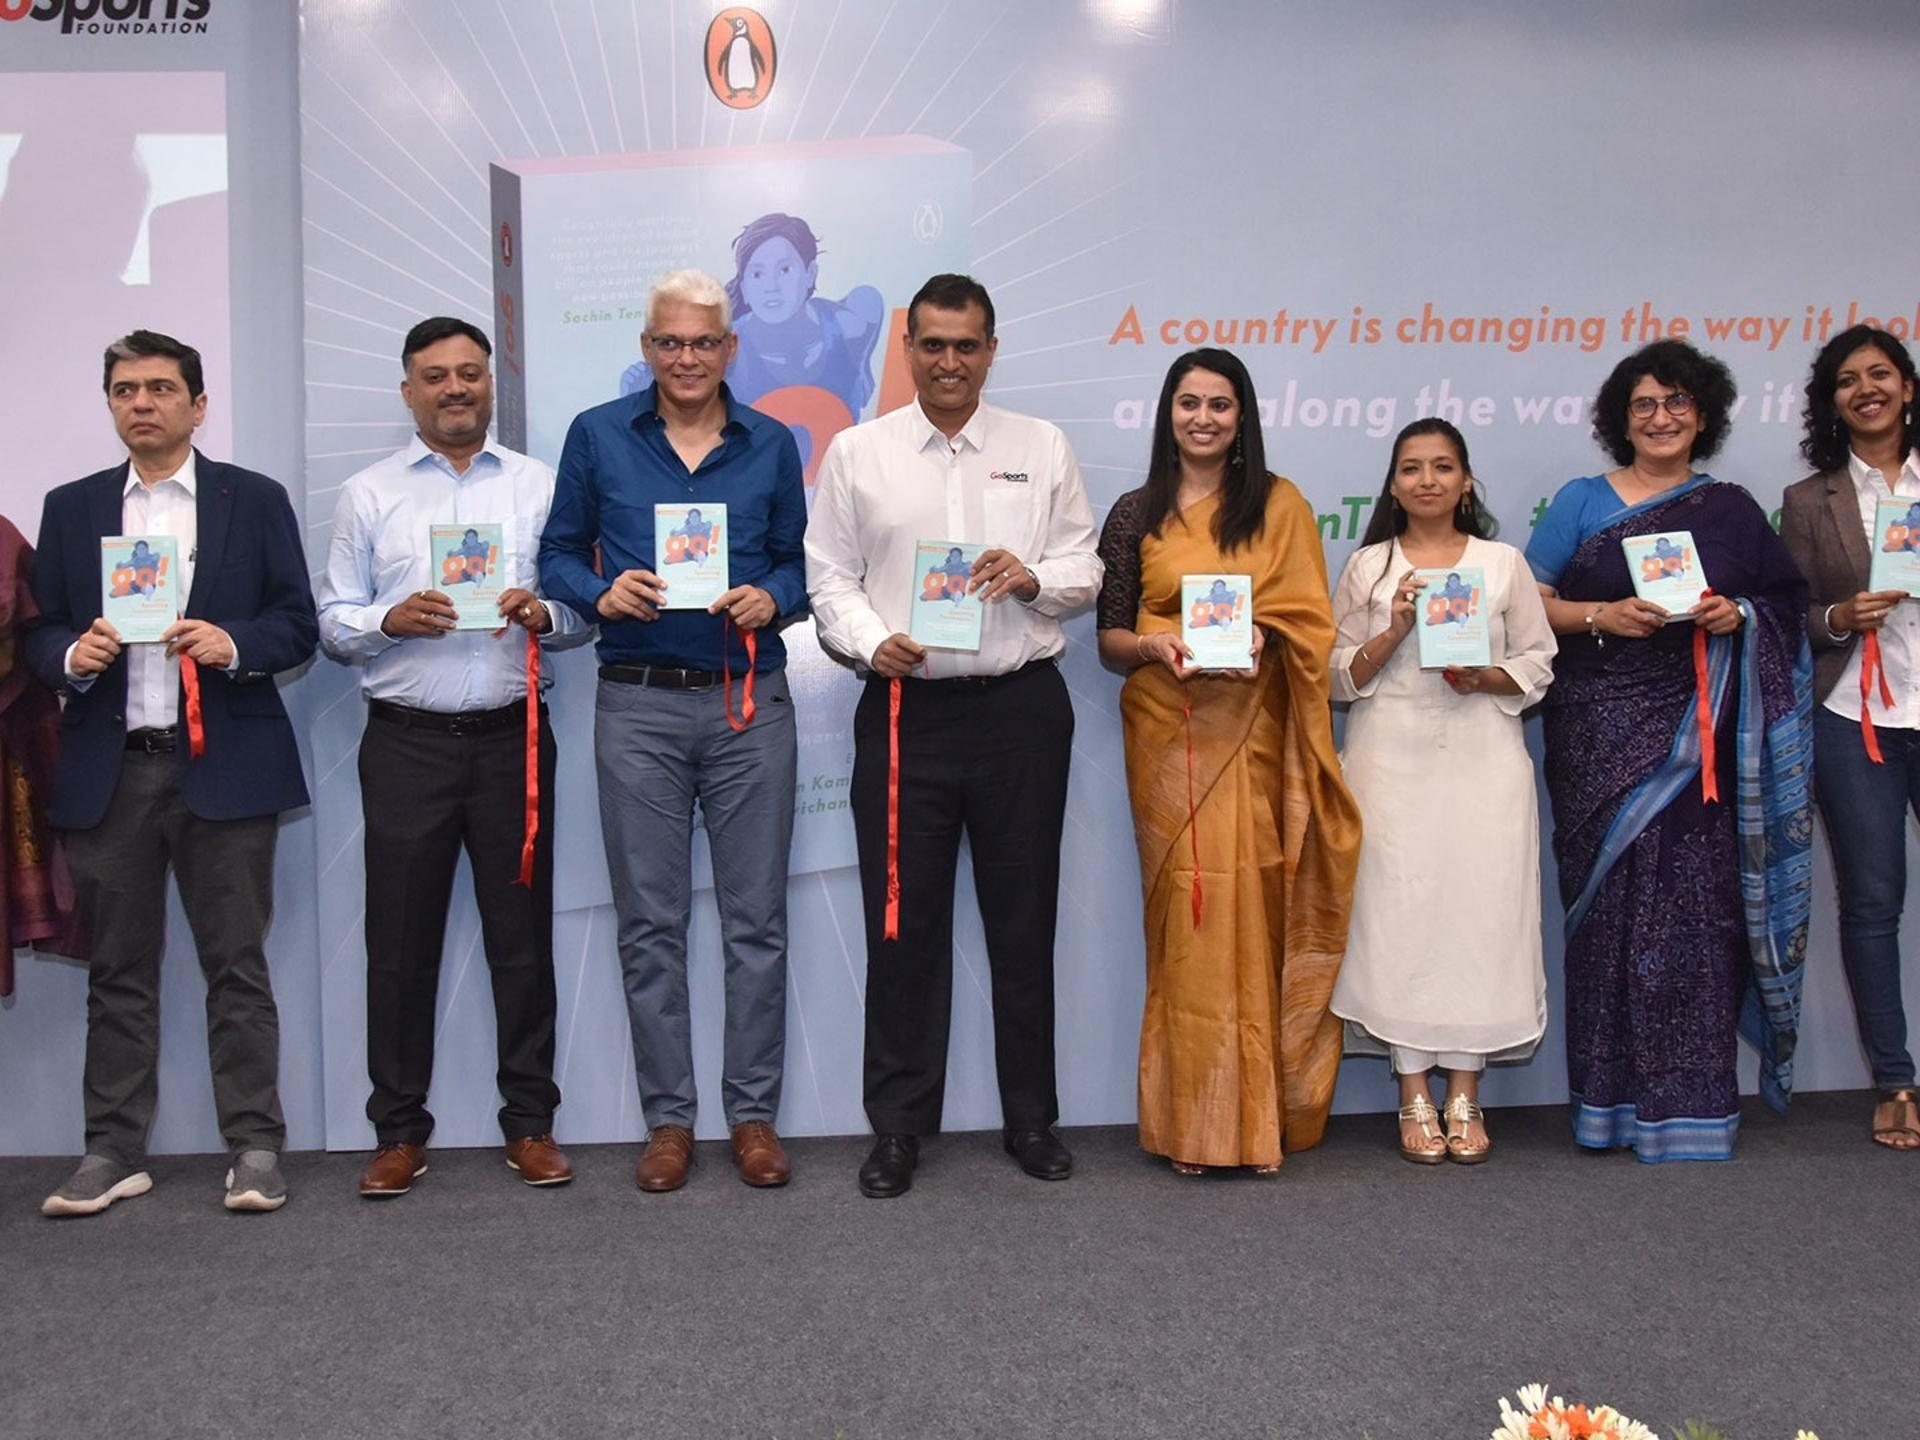 Go book launch 2019- Delhi